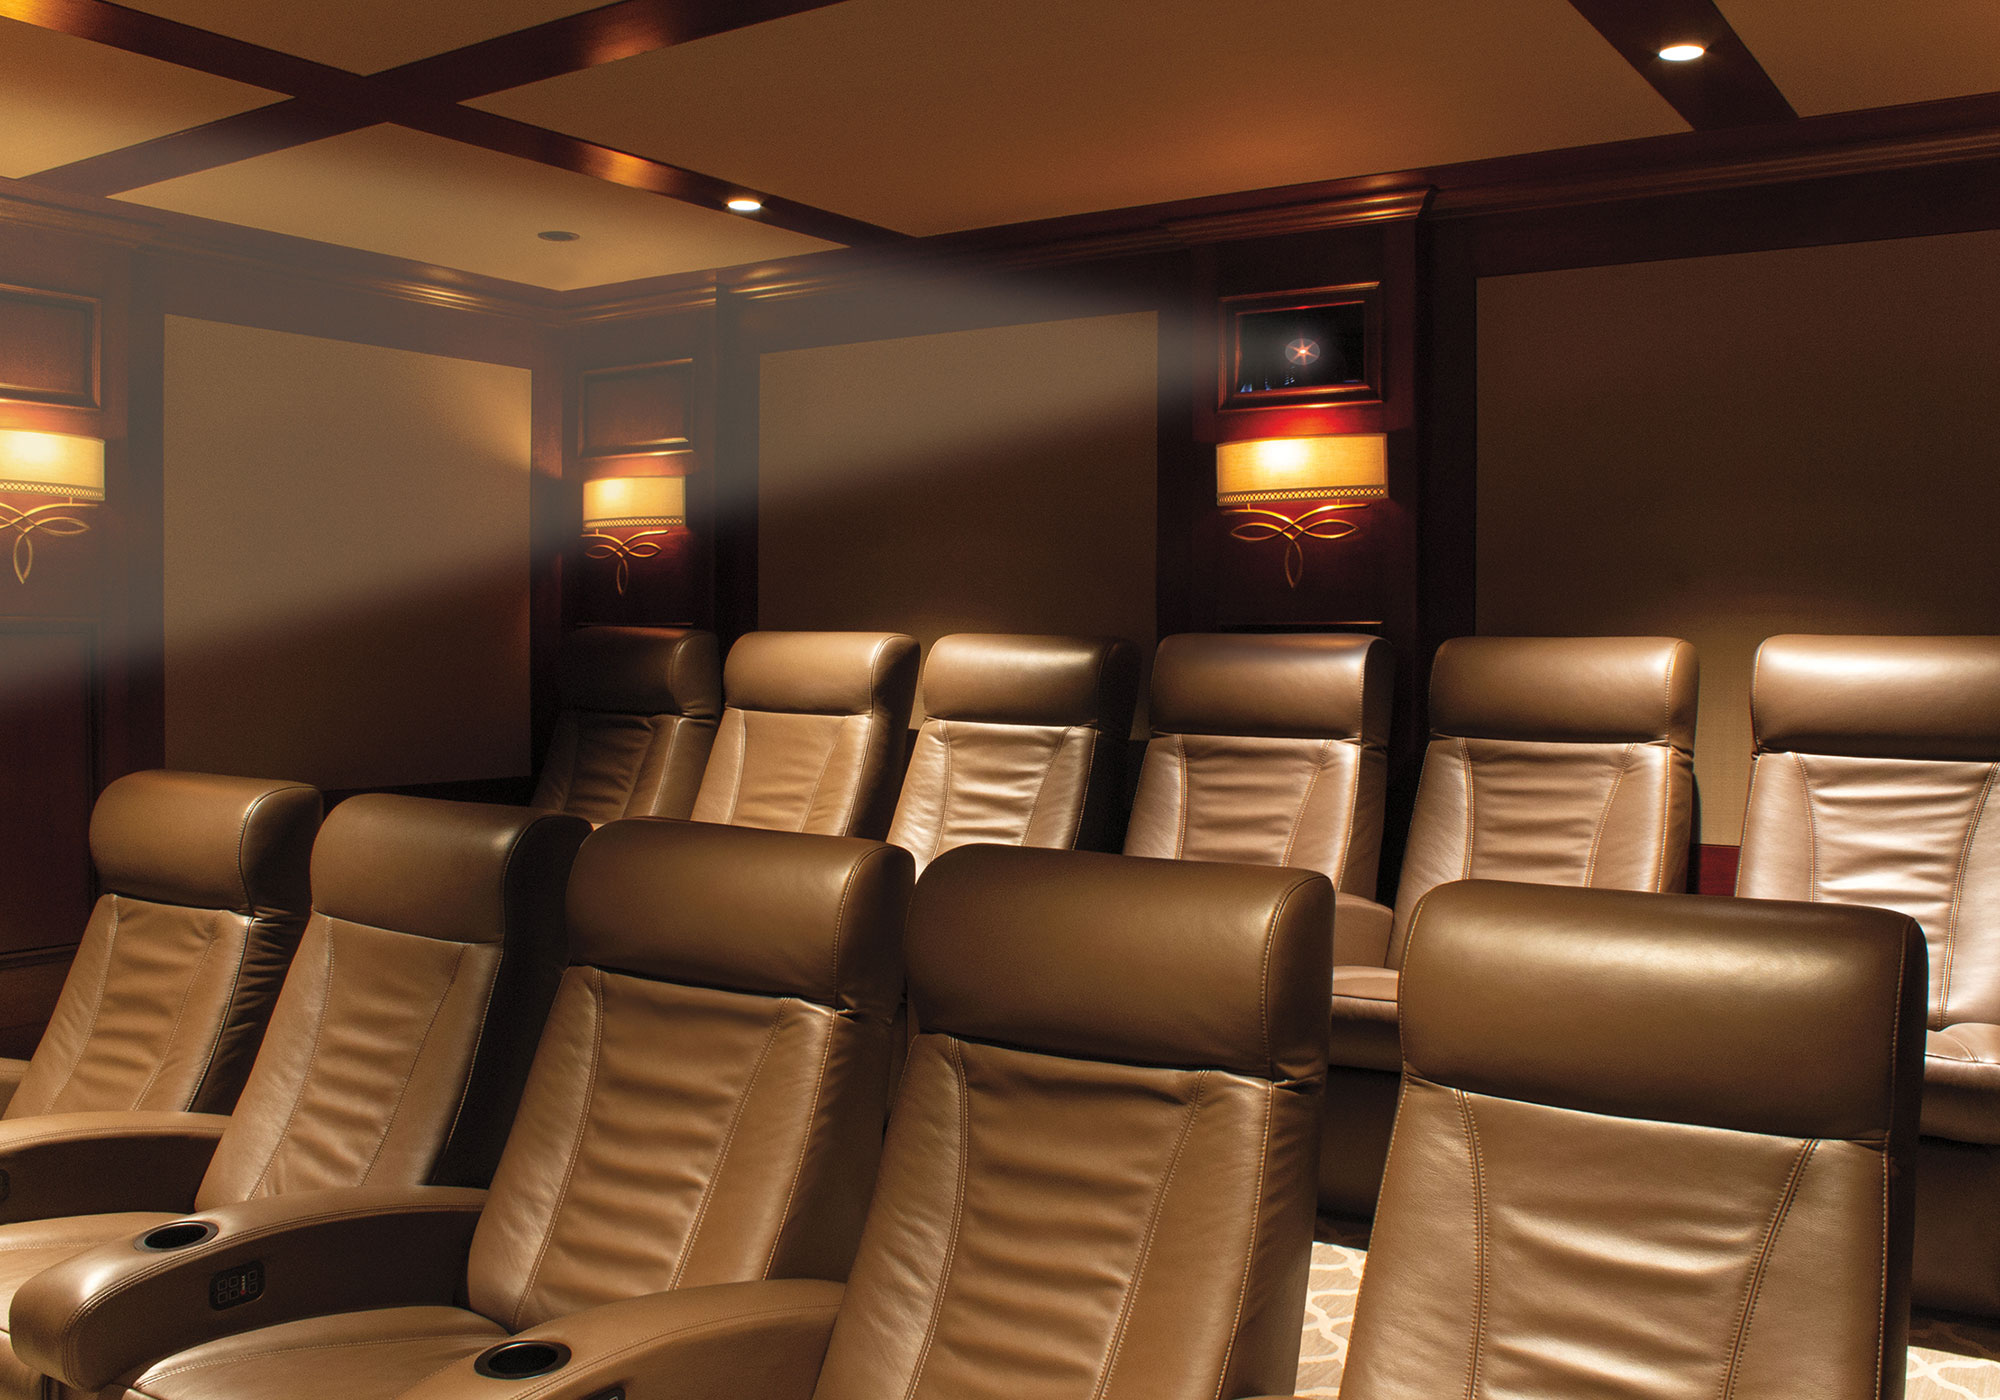 theater, projection system, seating, cineak